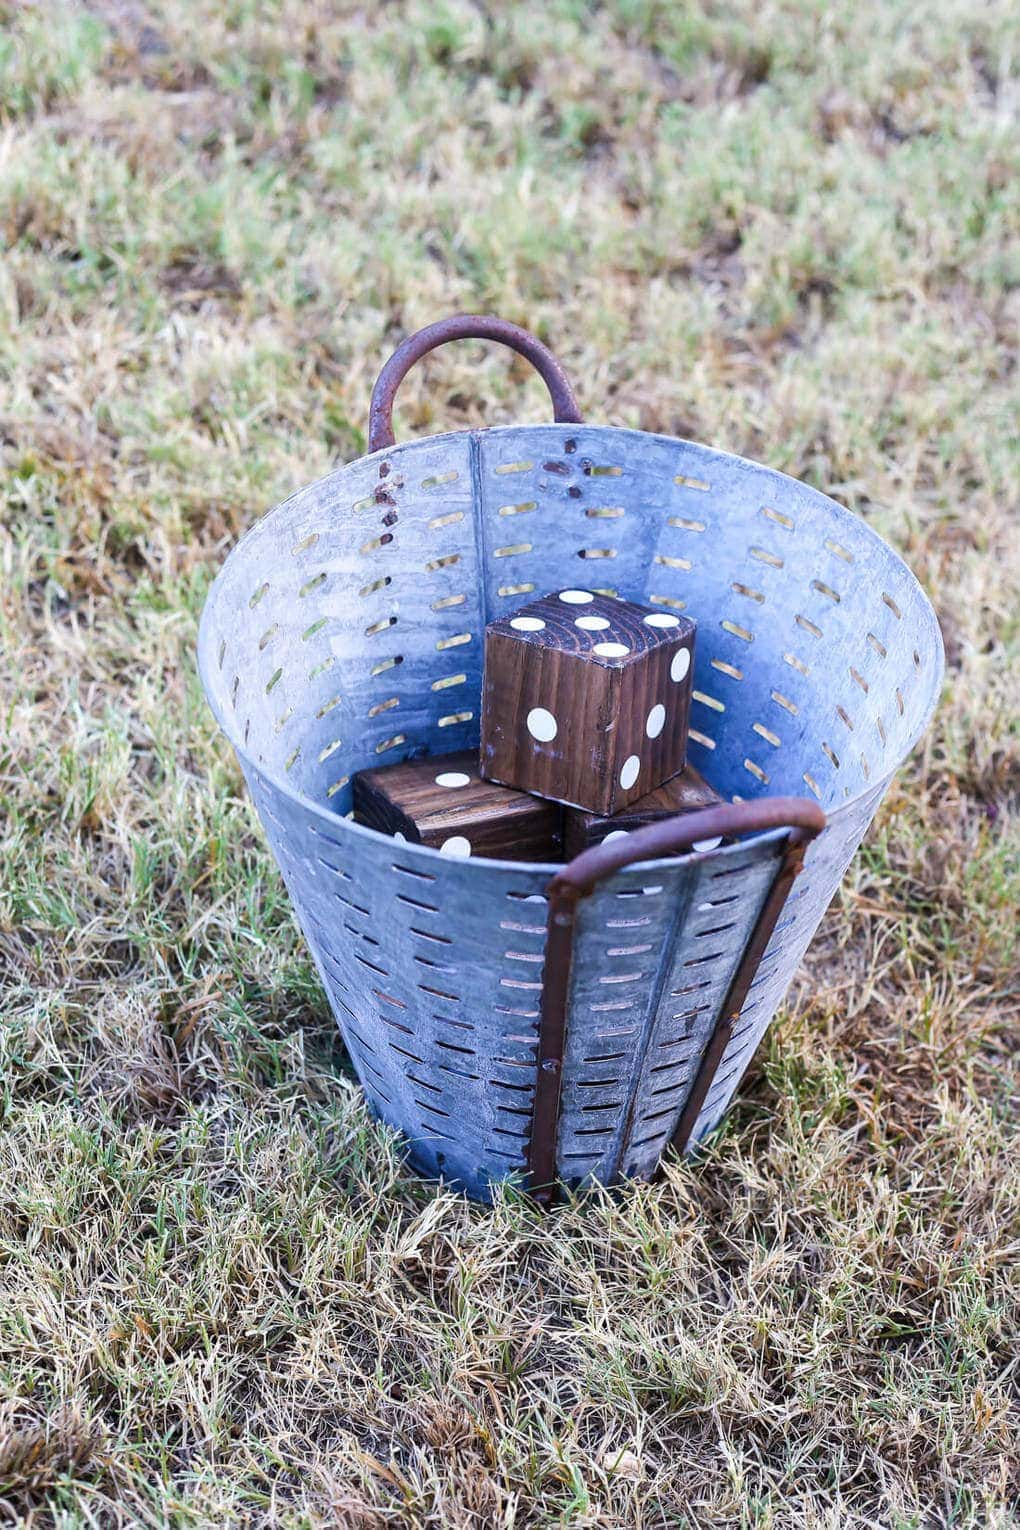 Wooden yard dice in an olive bucket